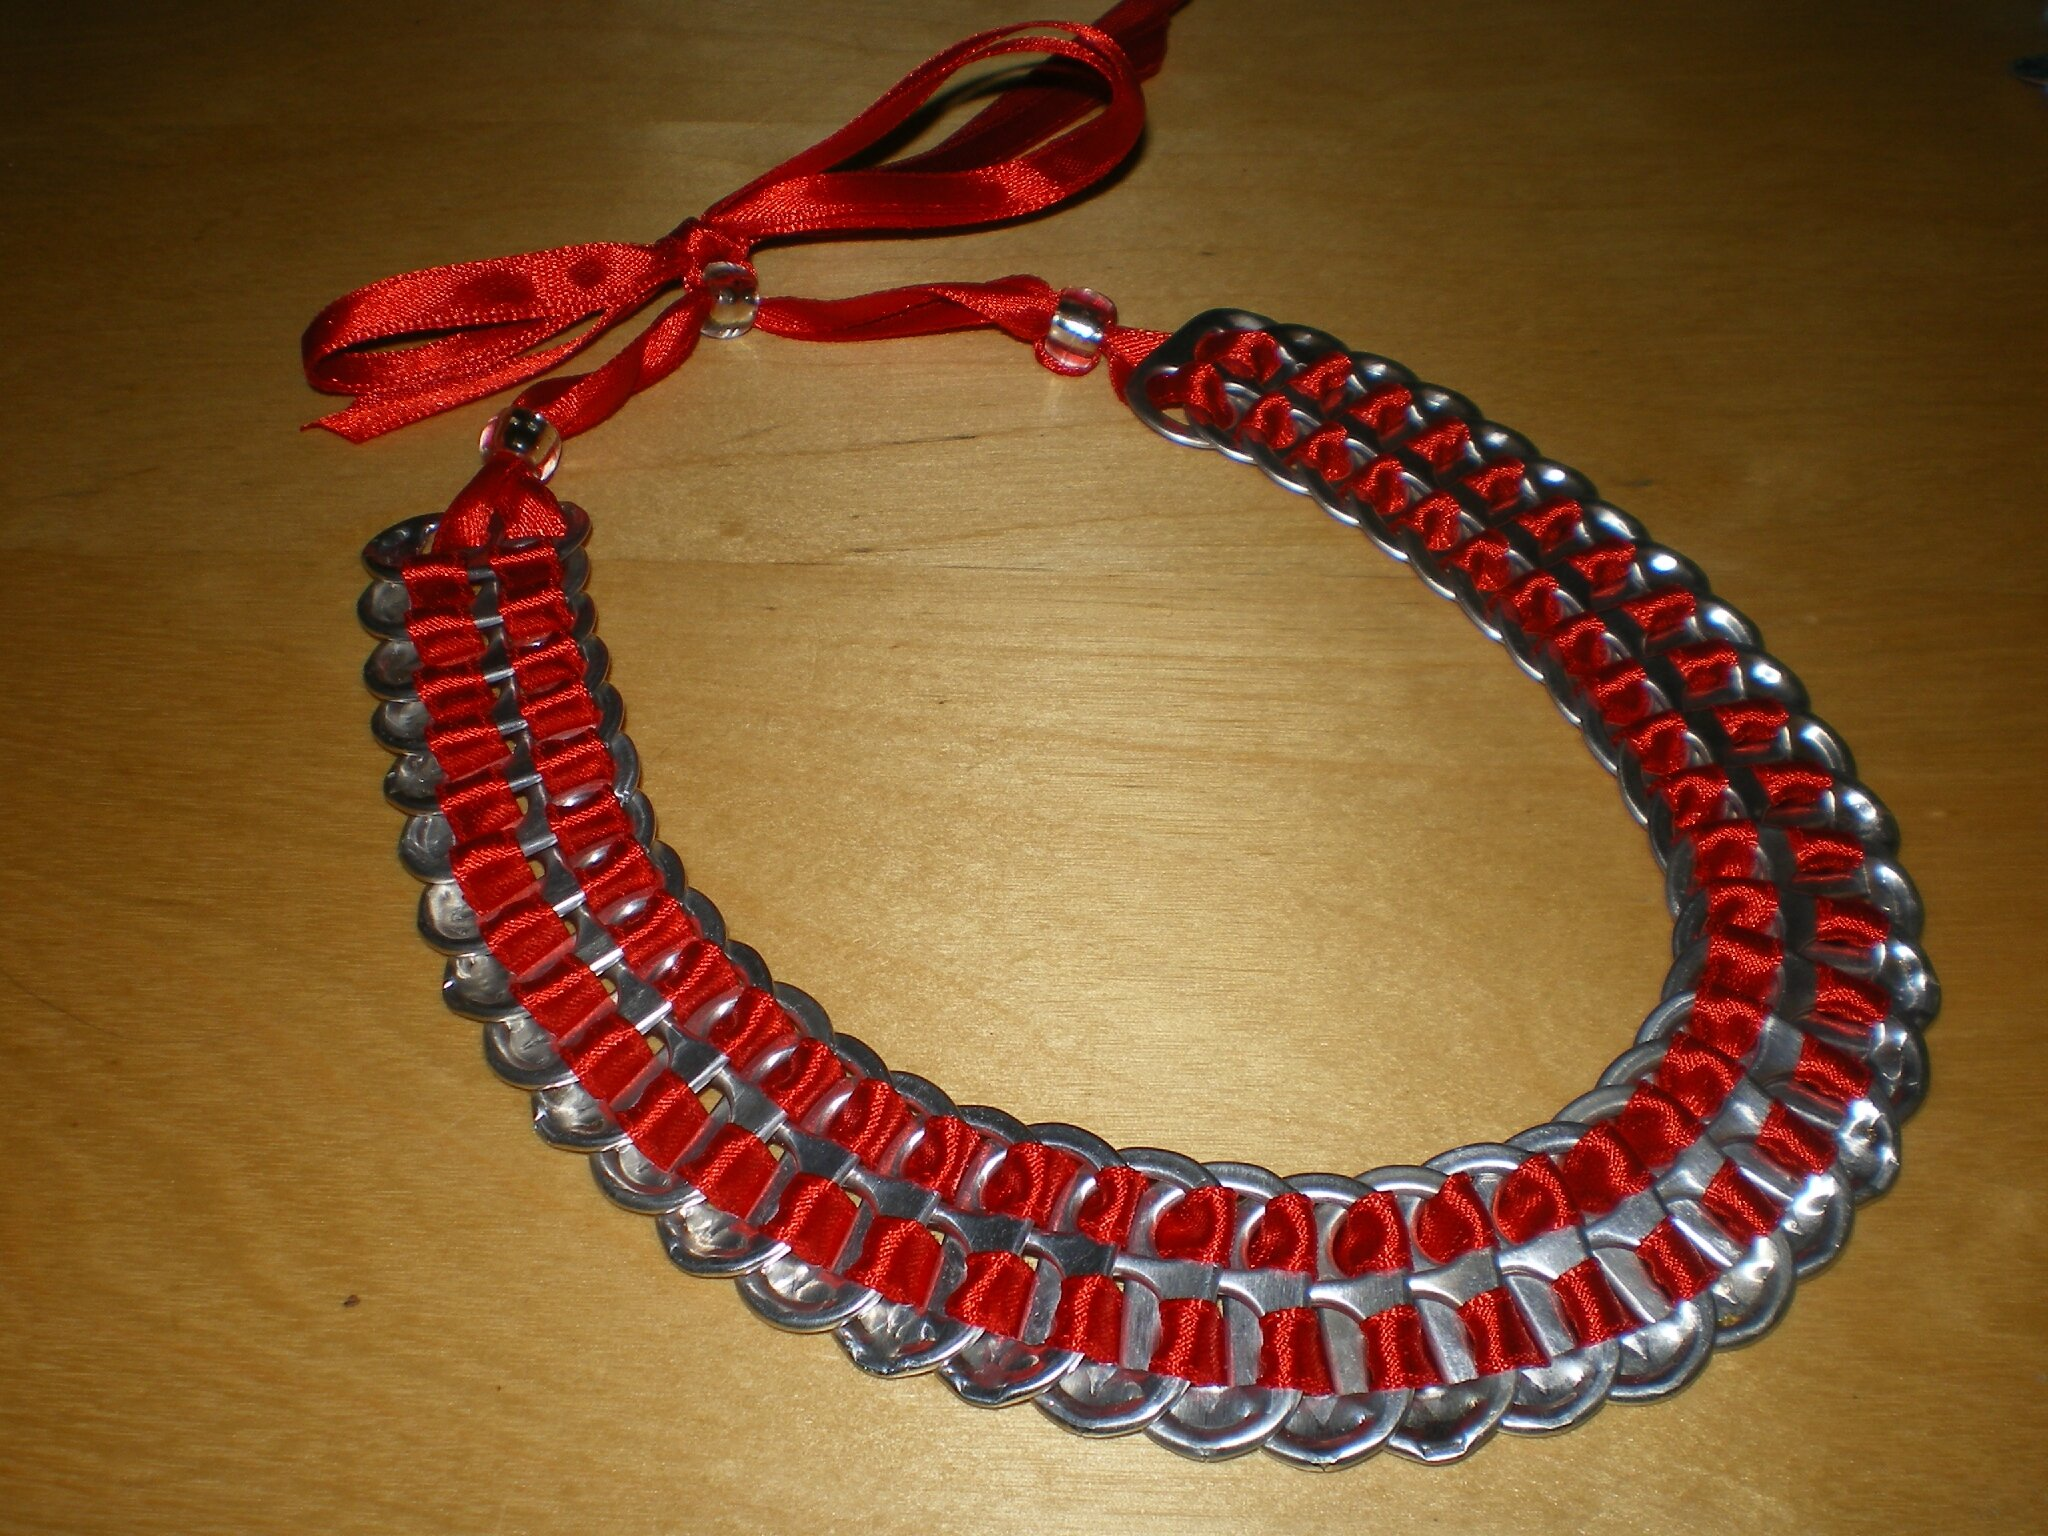 collier en ruban de satin rouge